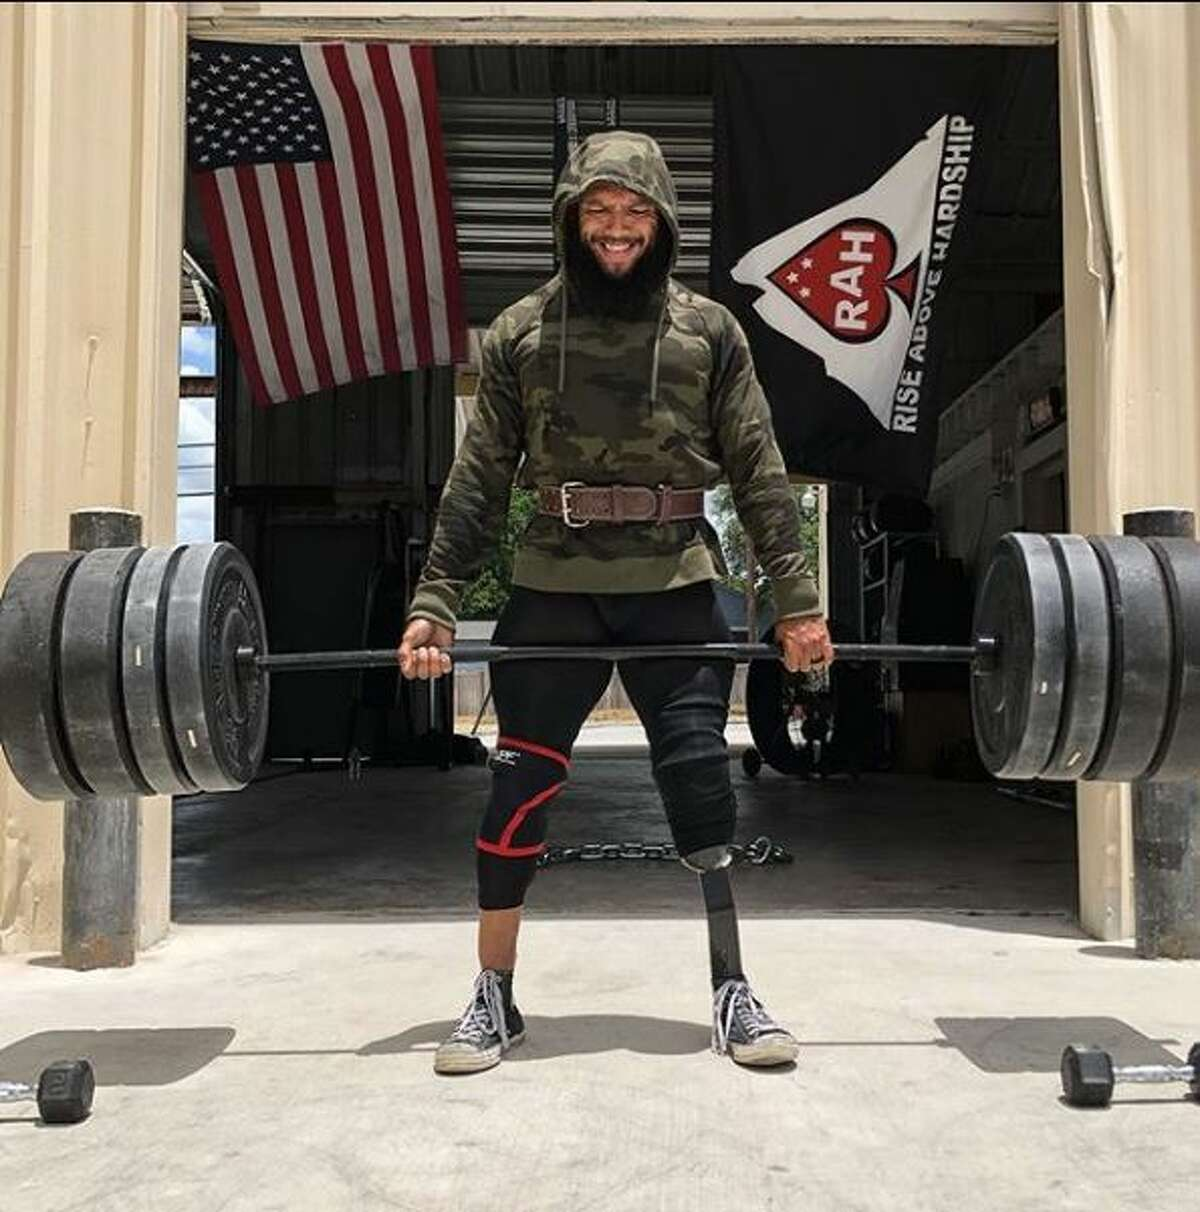 Jose Luis Sanchez uses his gym - and his Instagram account - to inspire others after recovering from losing a leg in Afghanistan.